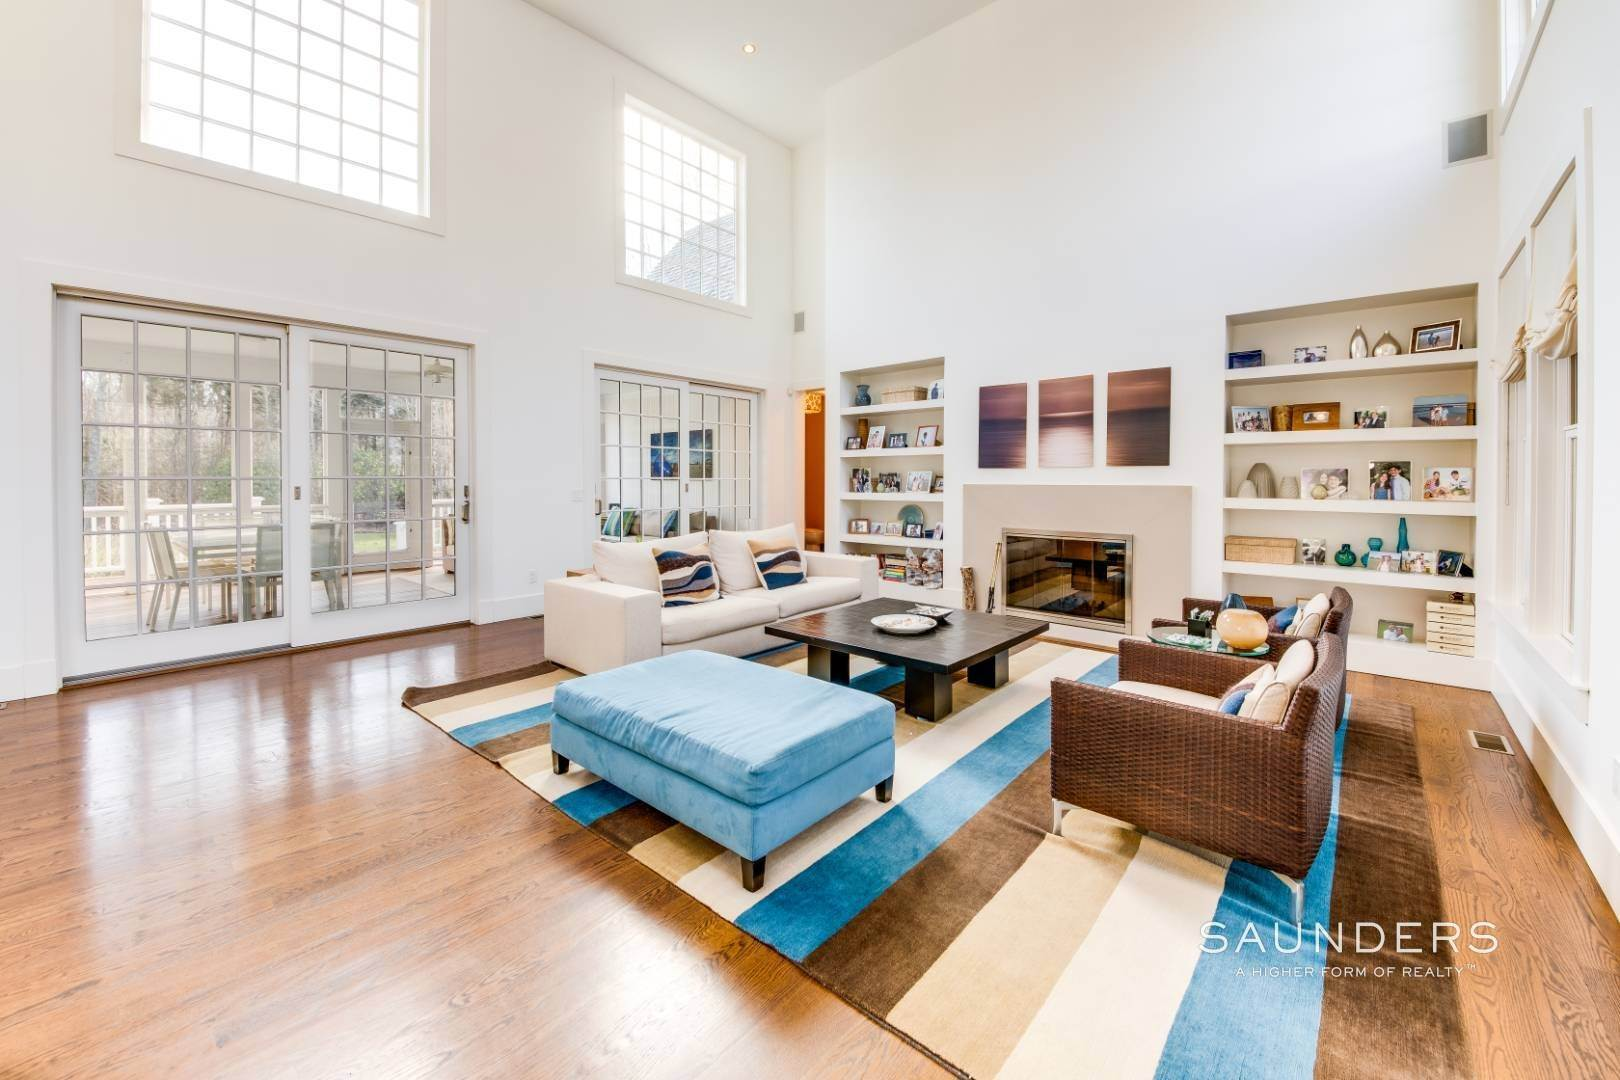 3. Single Family Homes for Sale at Wainscott South Traditional Near Beach Lane 10 Merriwood Drive, Wainscott, East Hampton Town, NY 11975